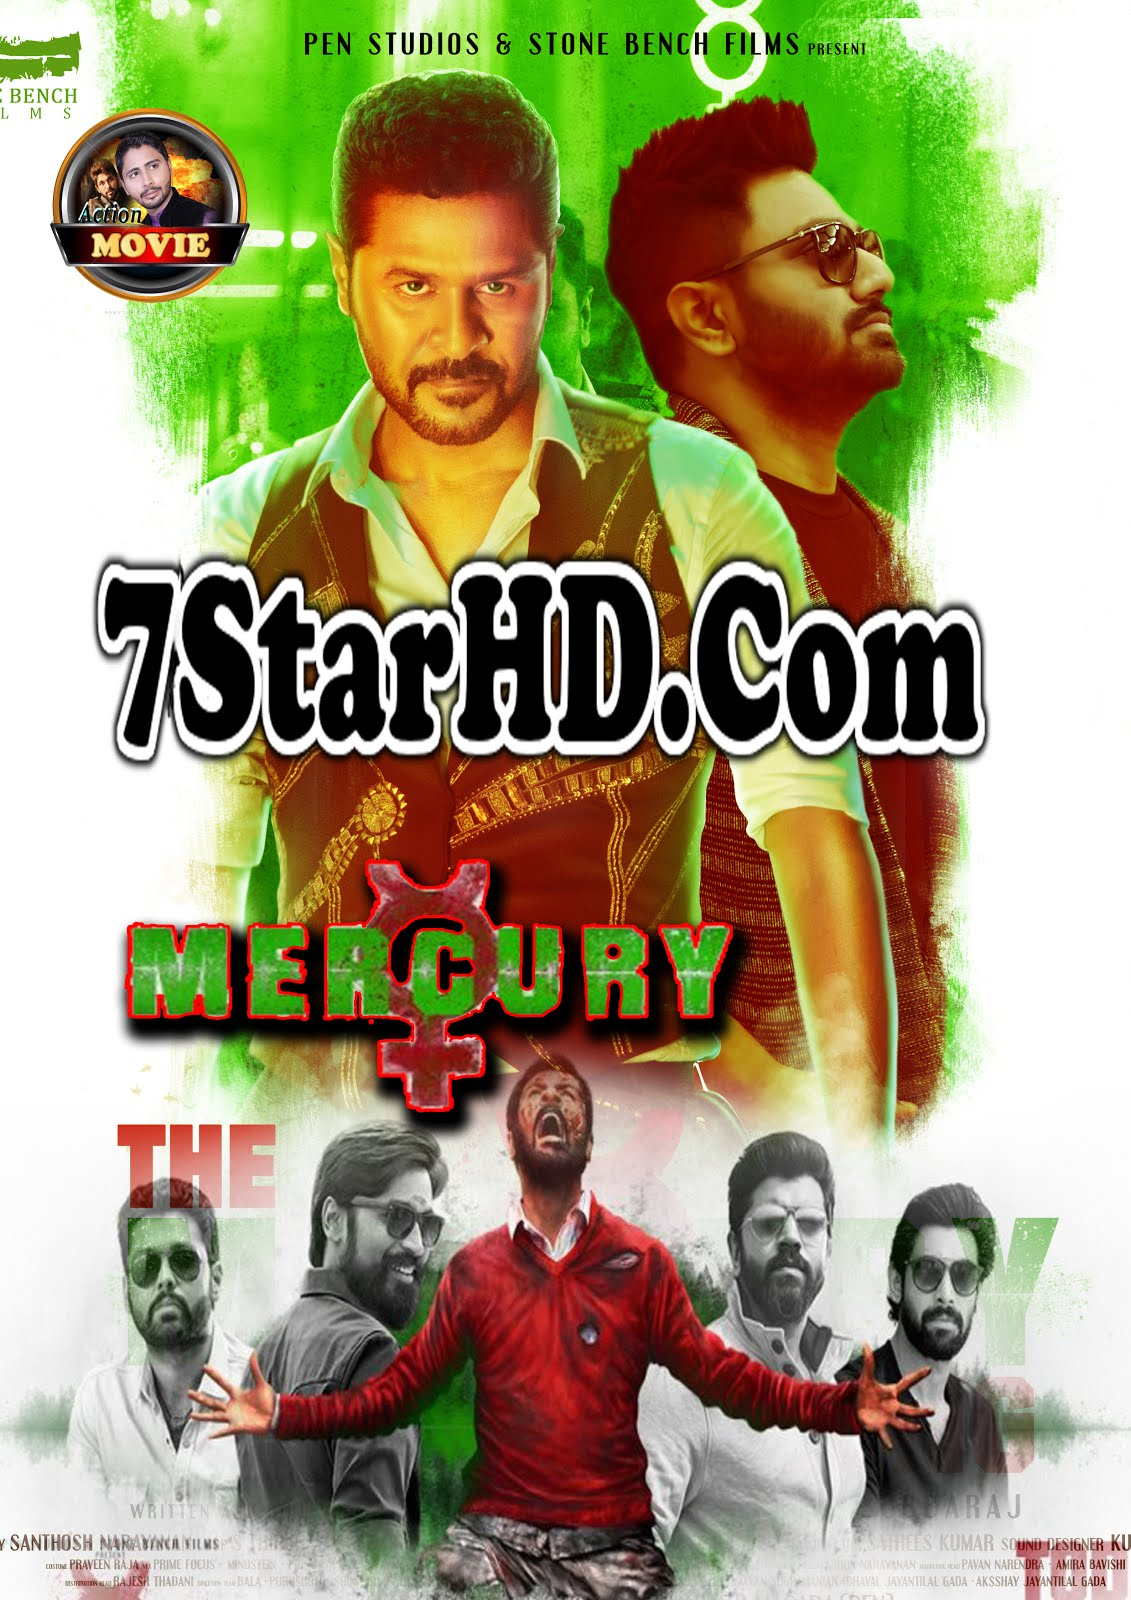 Mercury (2018) Hindi Dubbed 350MB DVDScr 480p x264